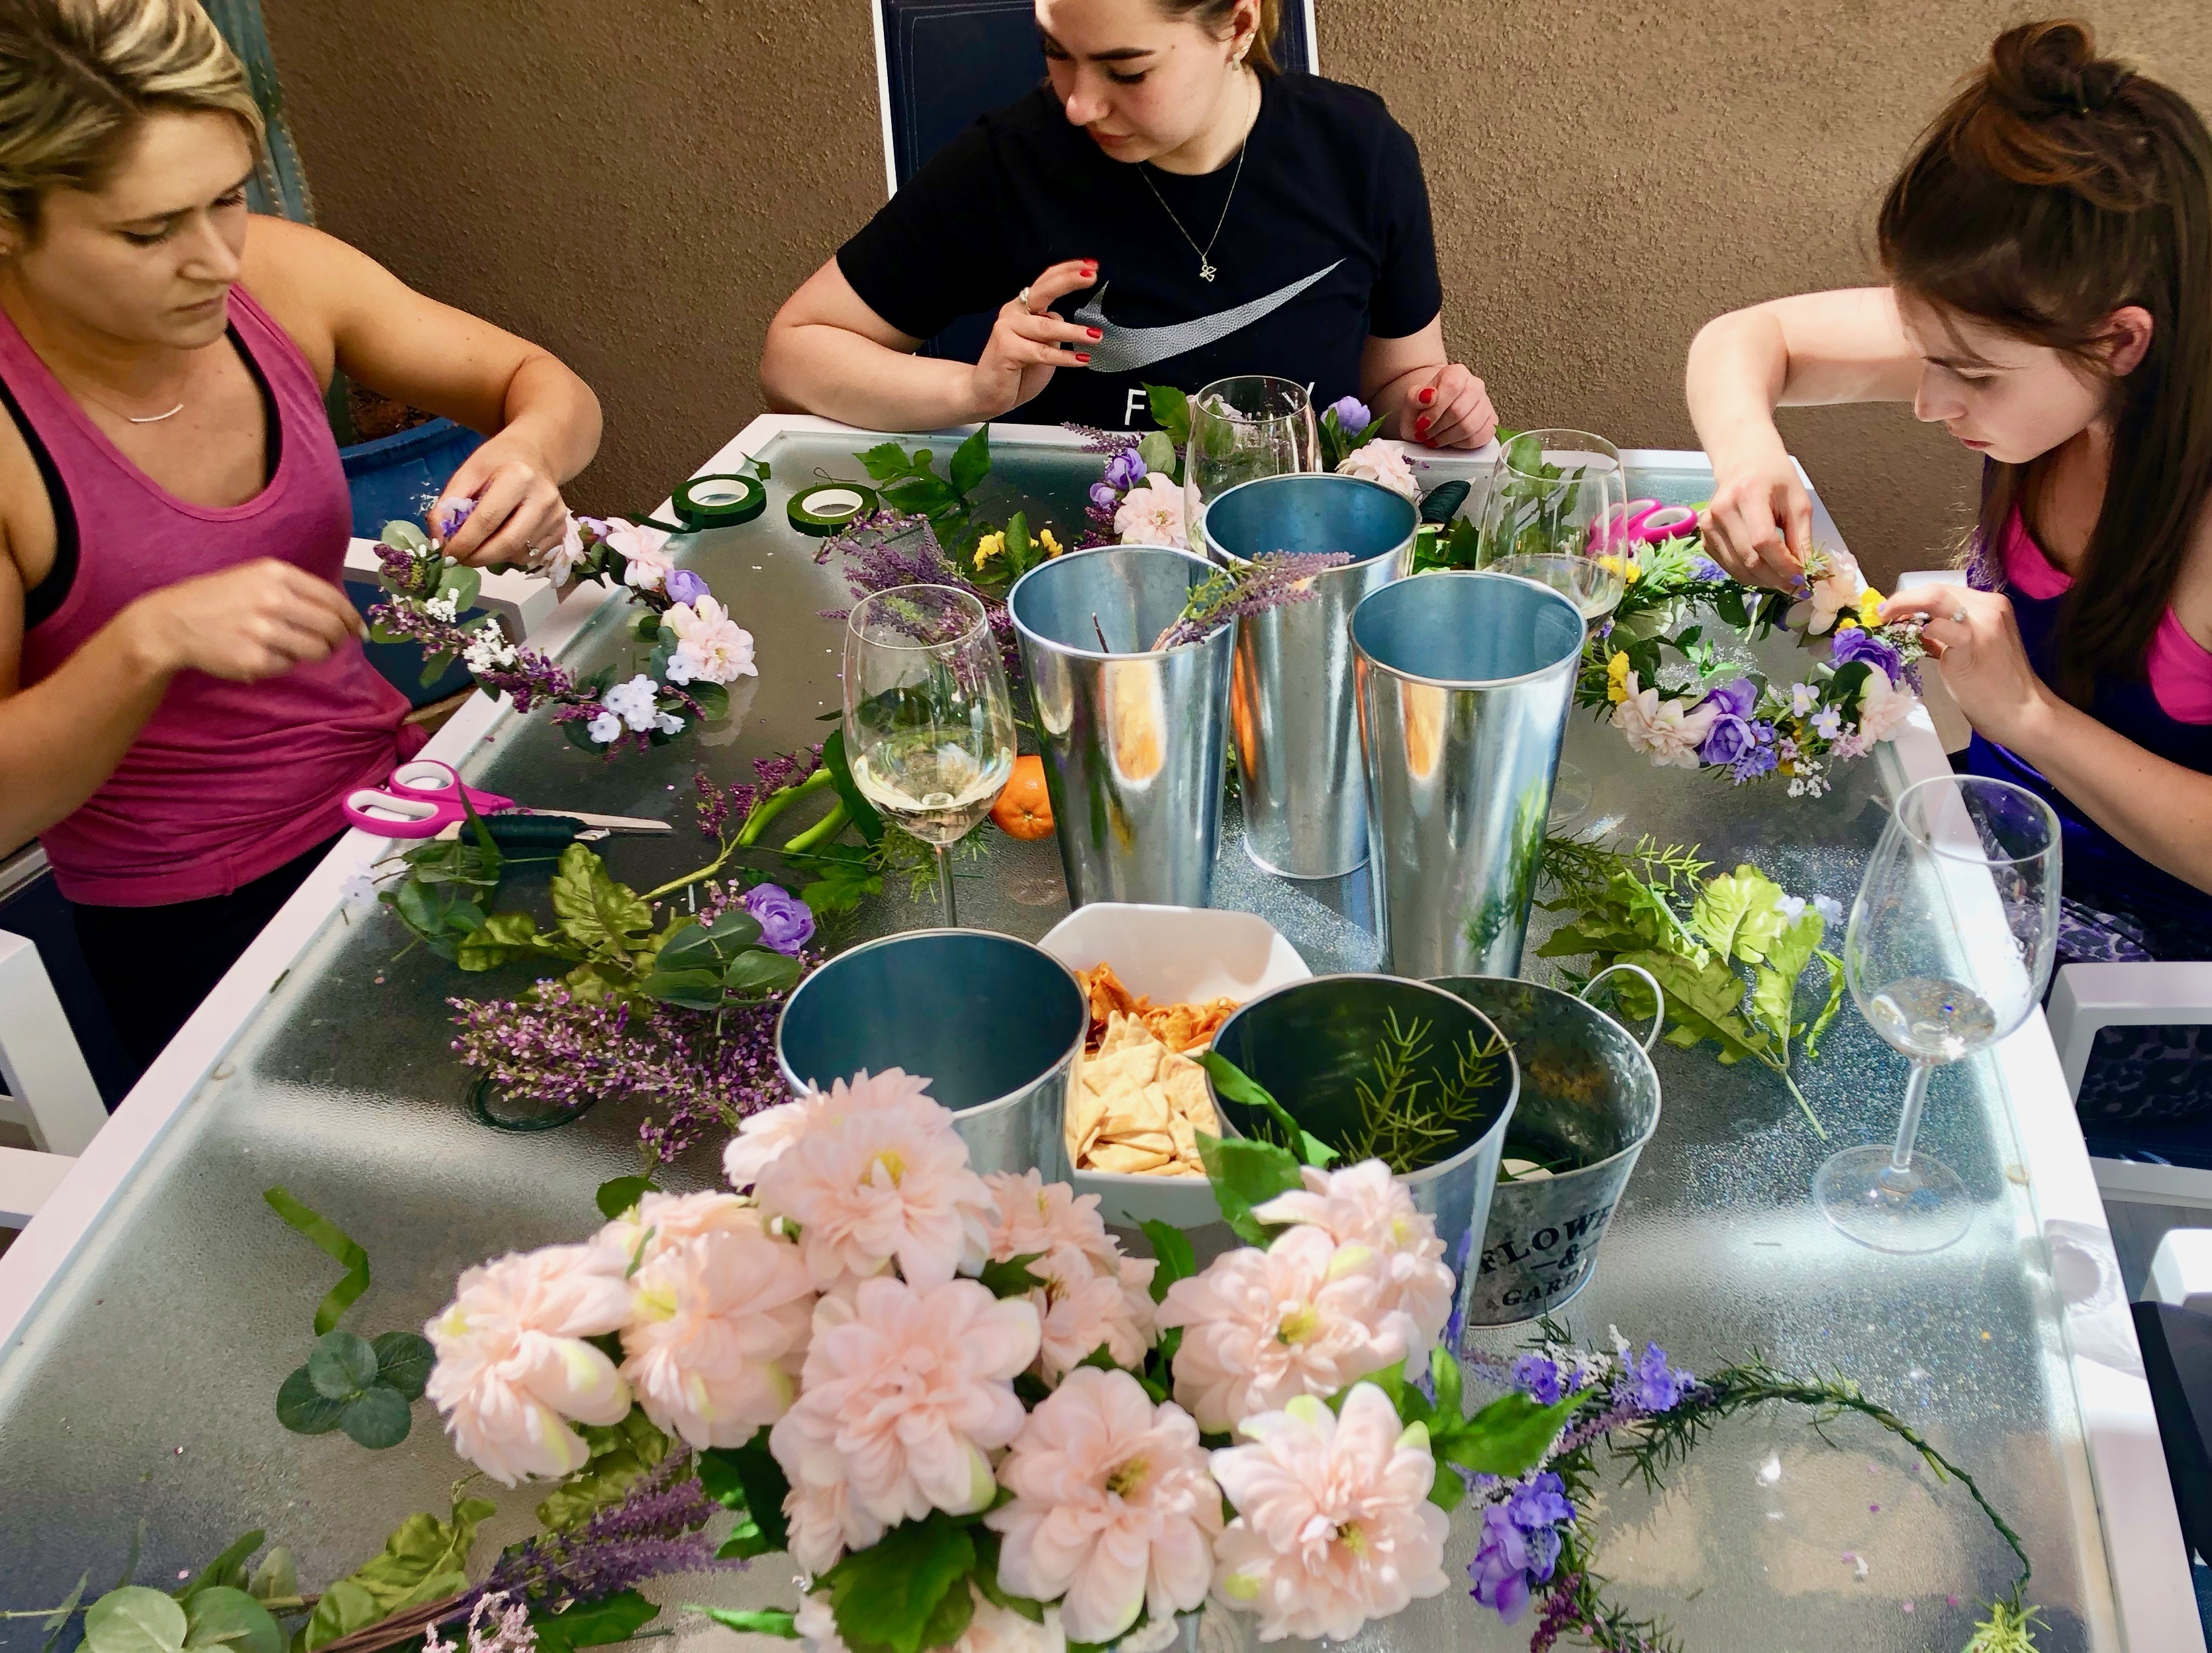 DIY flower crowns for a bachelorette party in Palm Springs